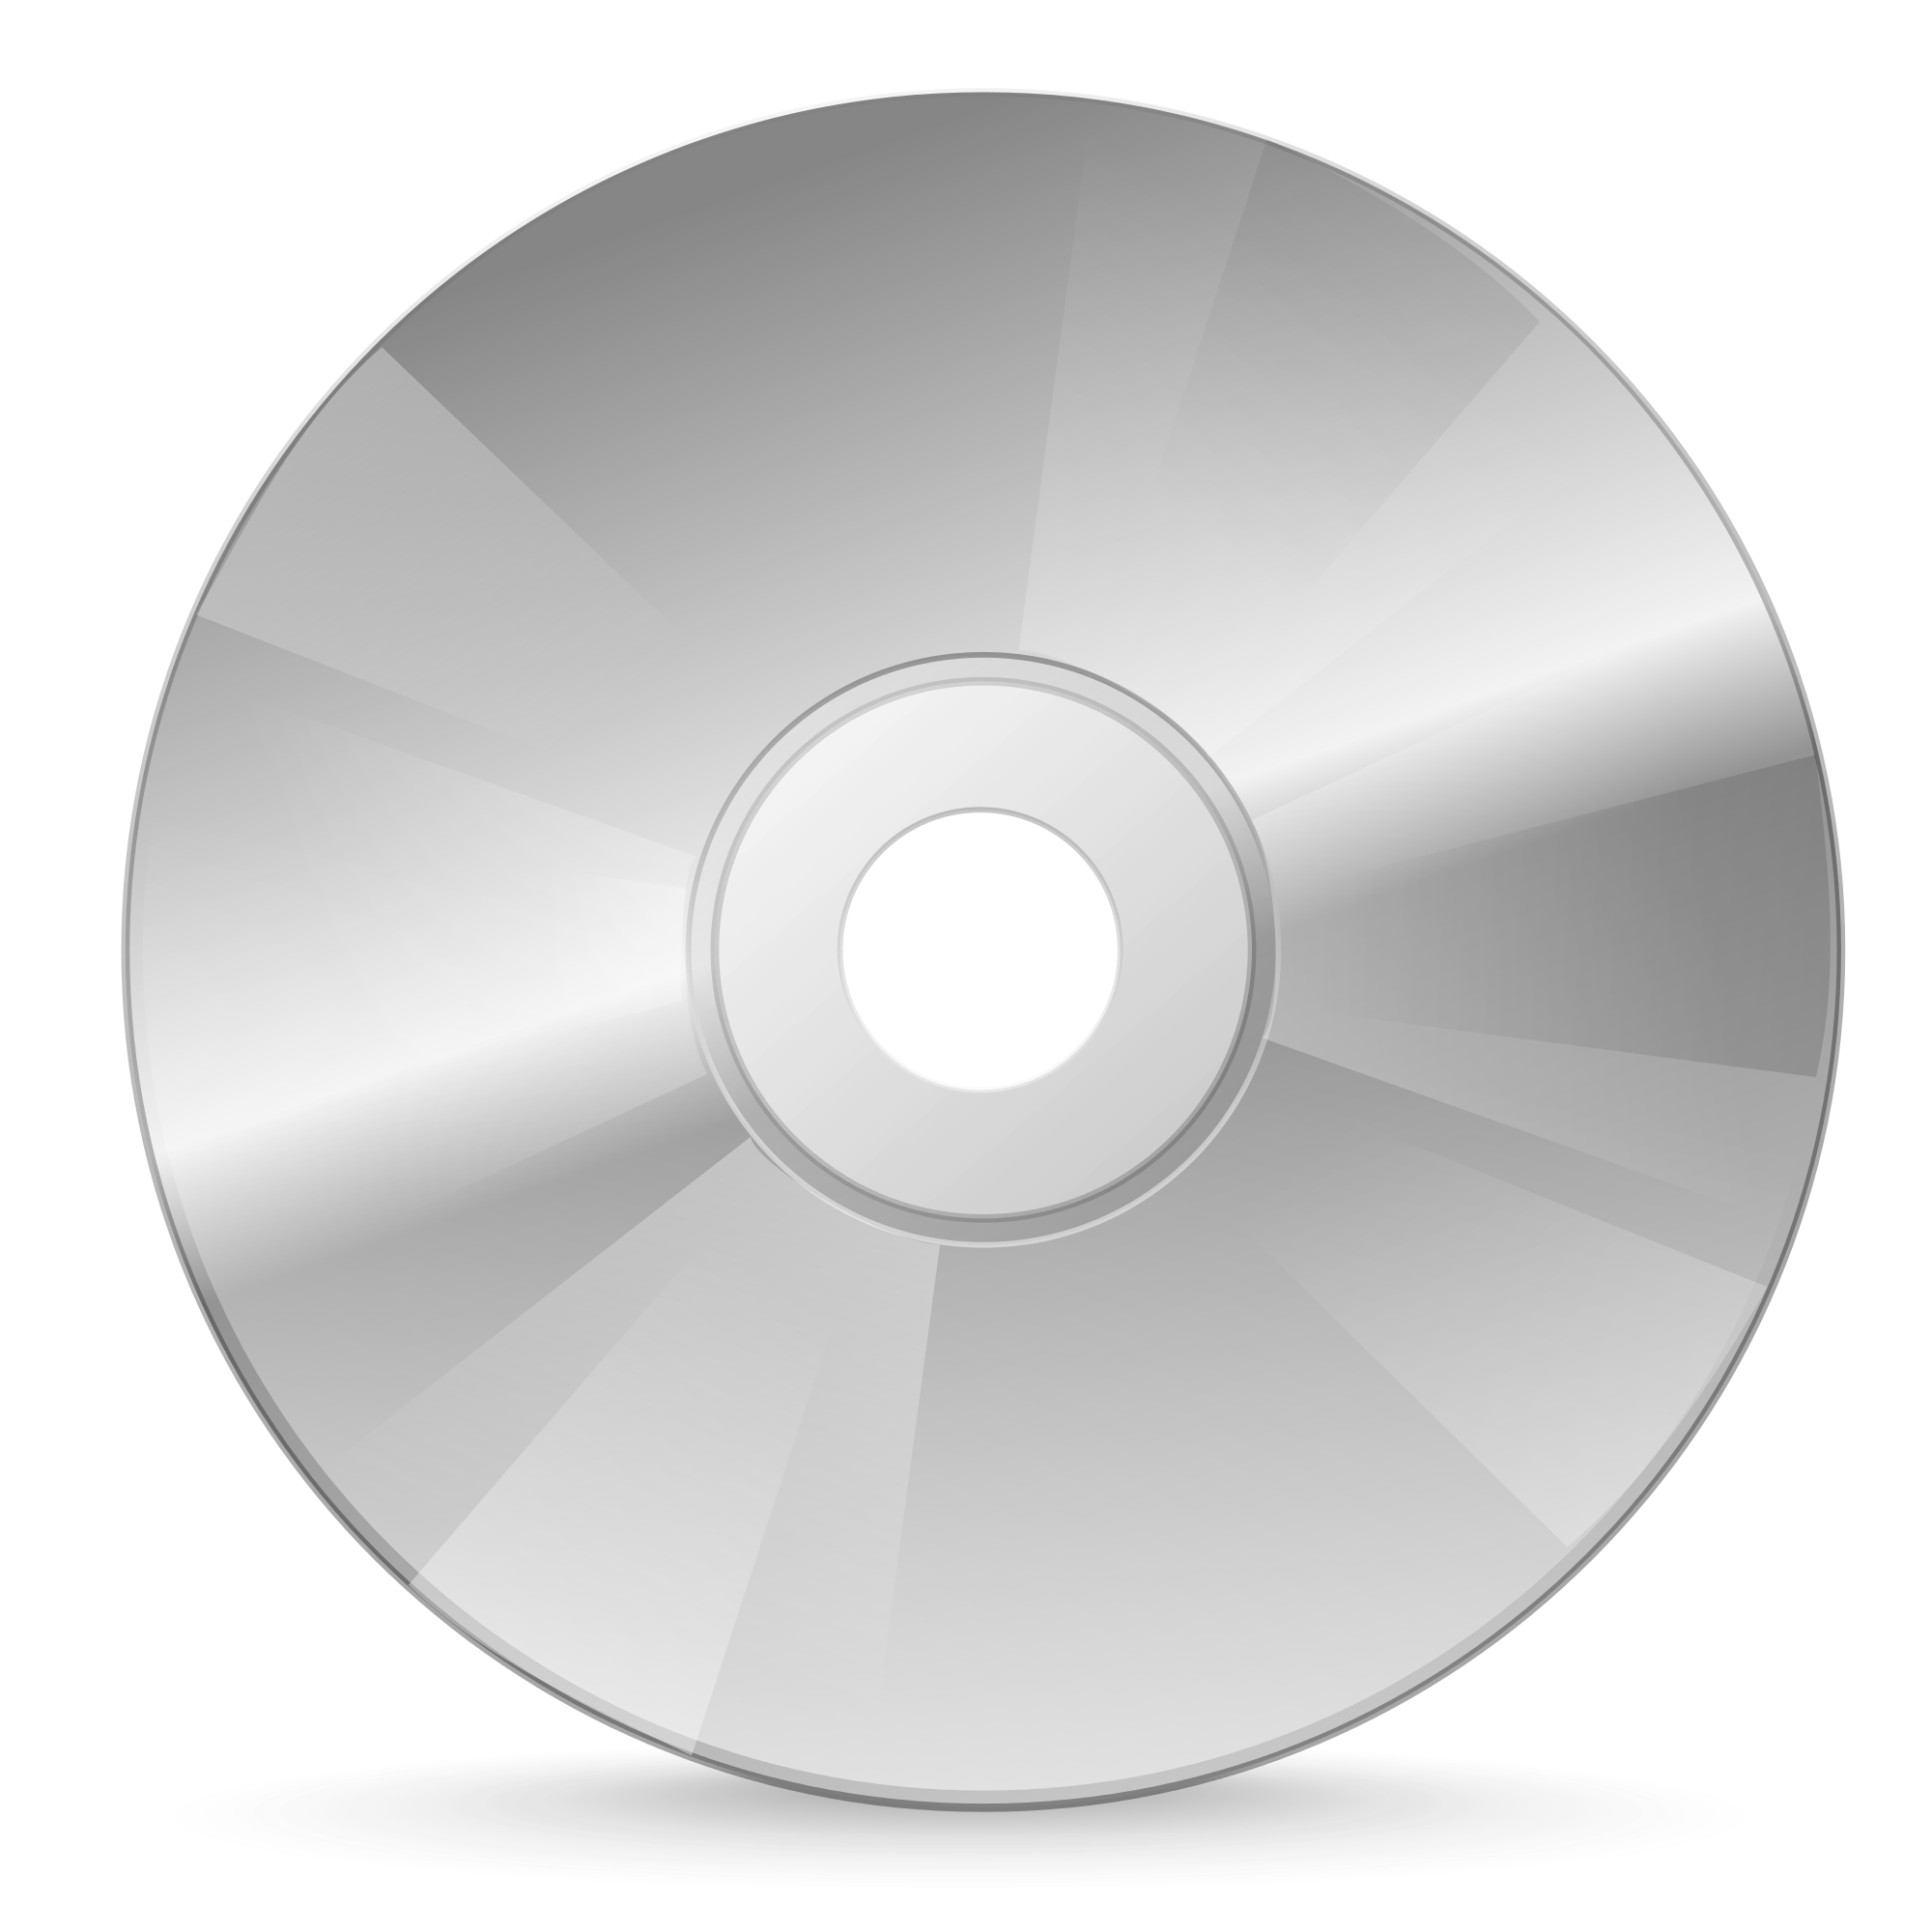 Compact dvd disk png. Cd clipart transparent background